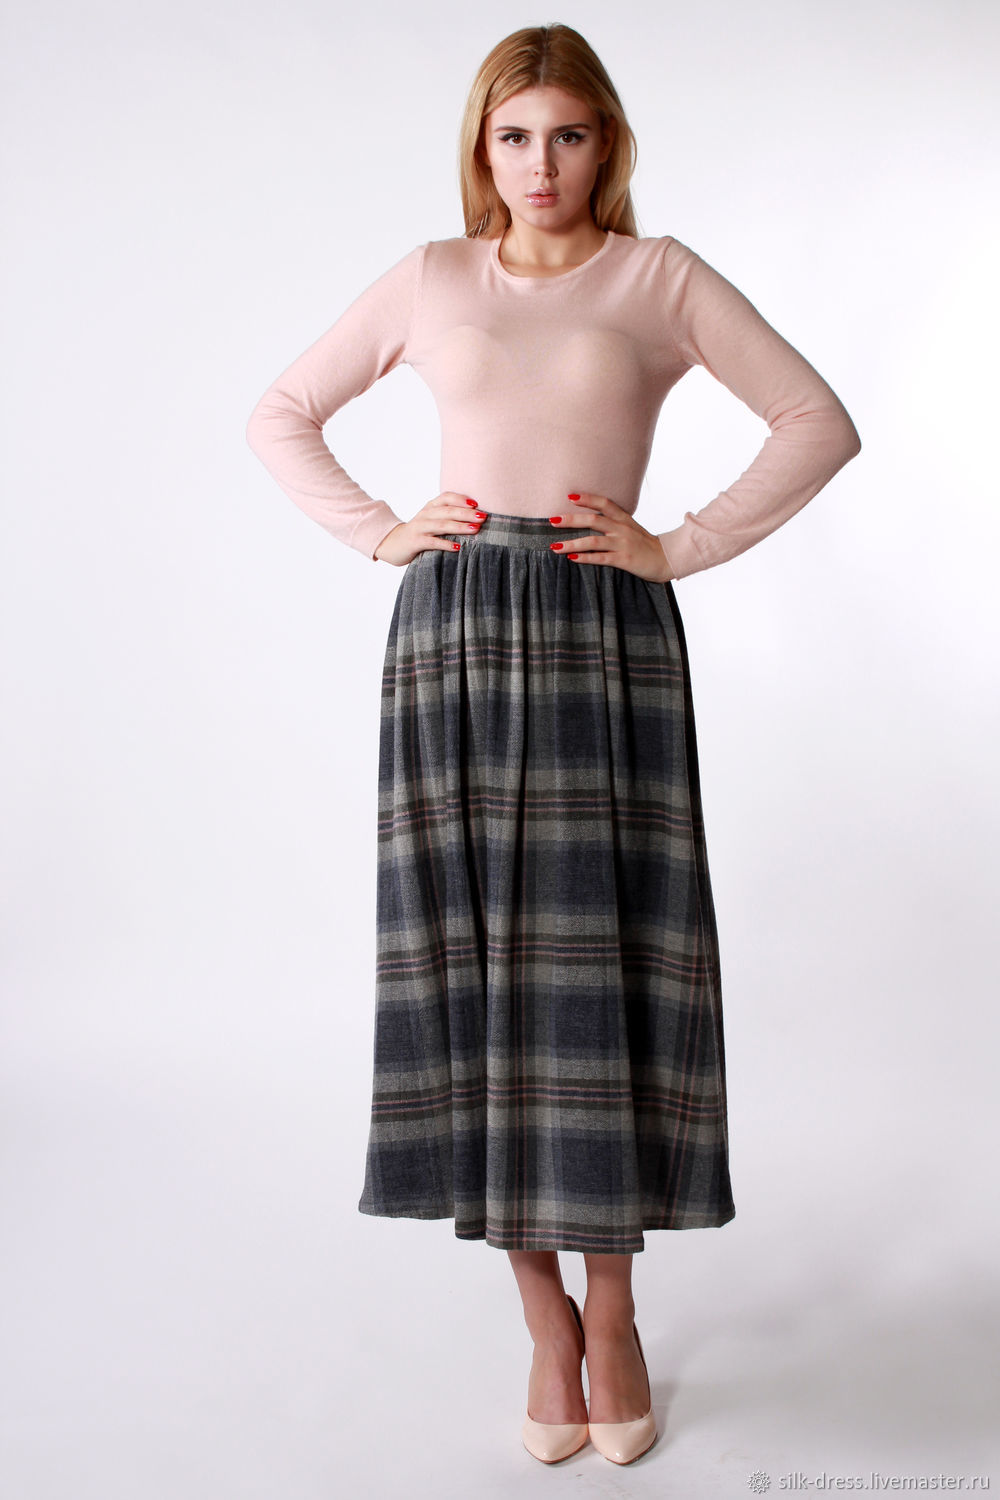 The plaid skirt made of wool